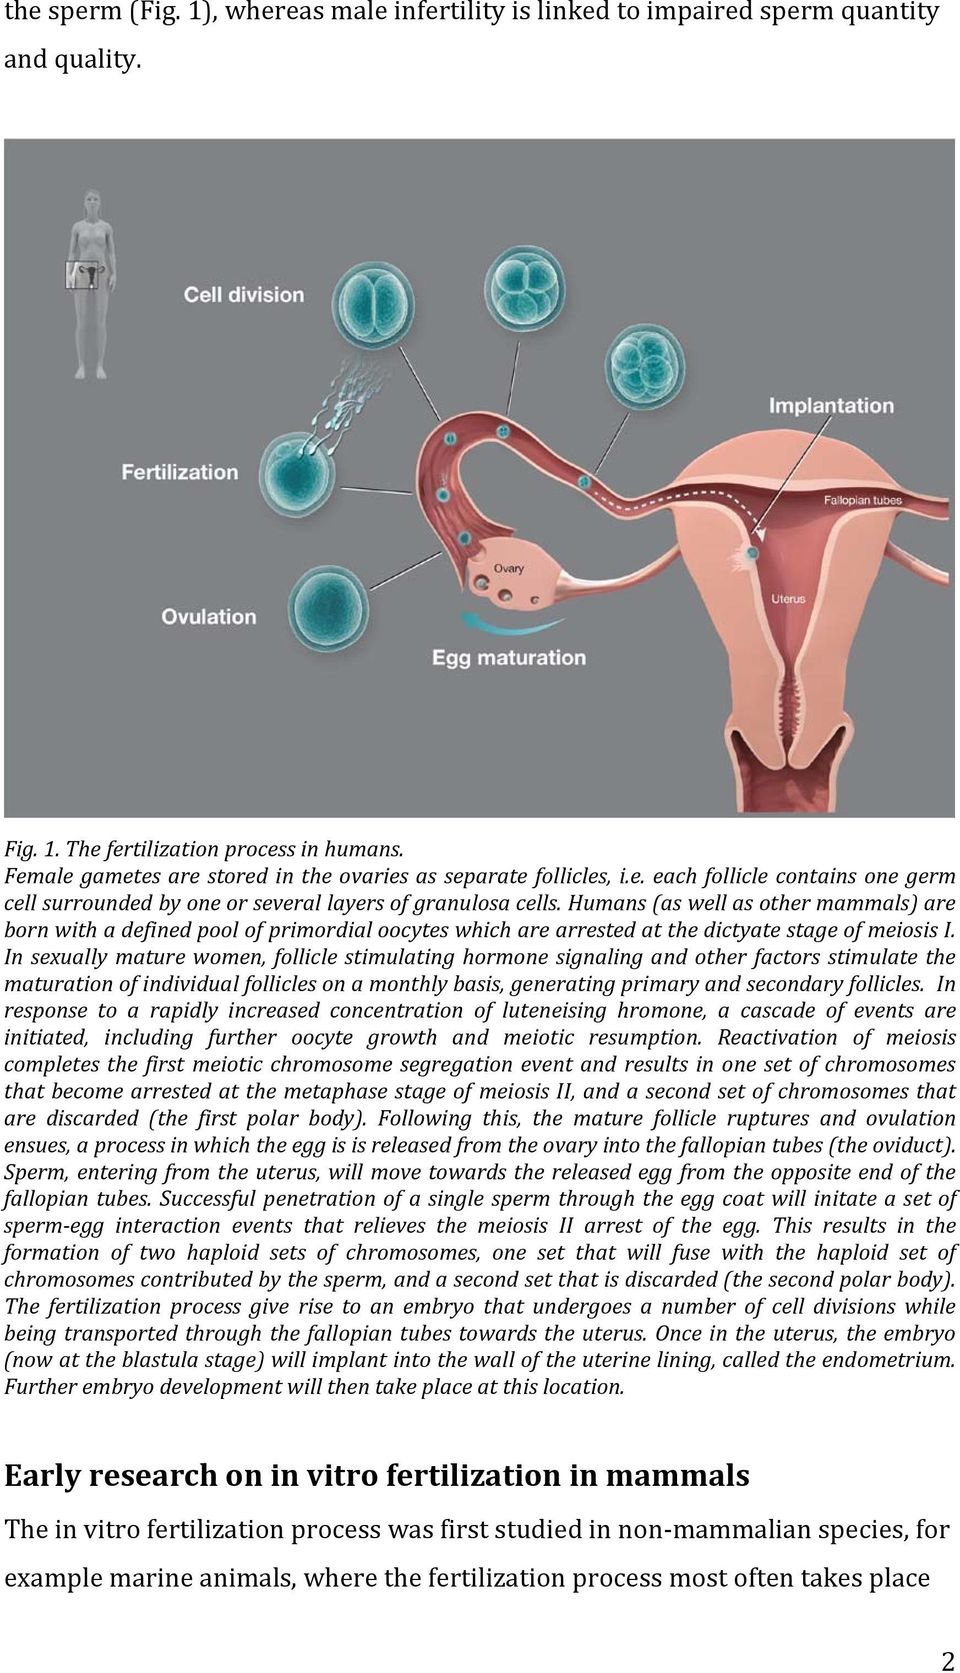 human in vitro fertilization - pdf